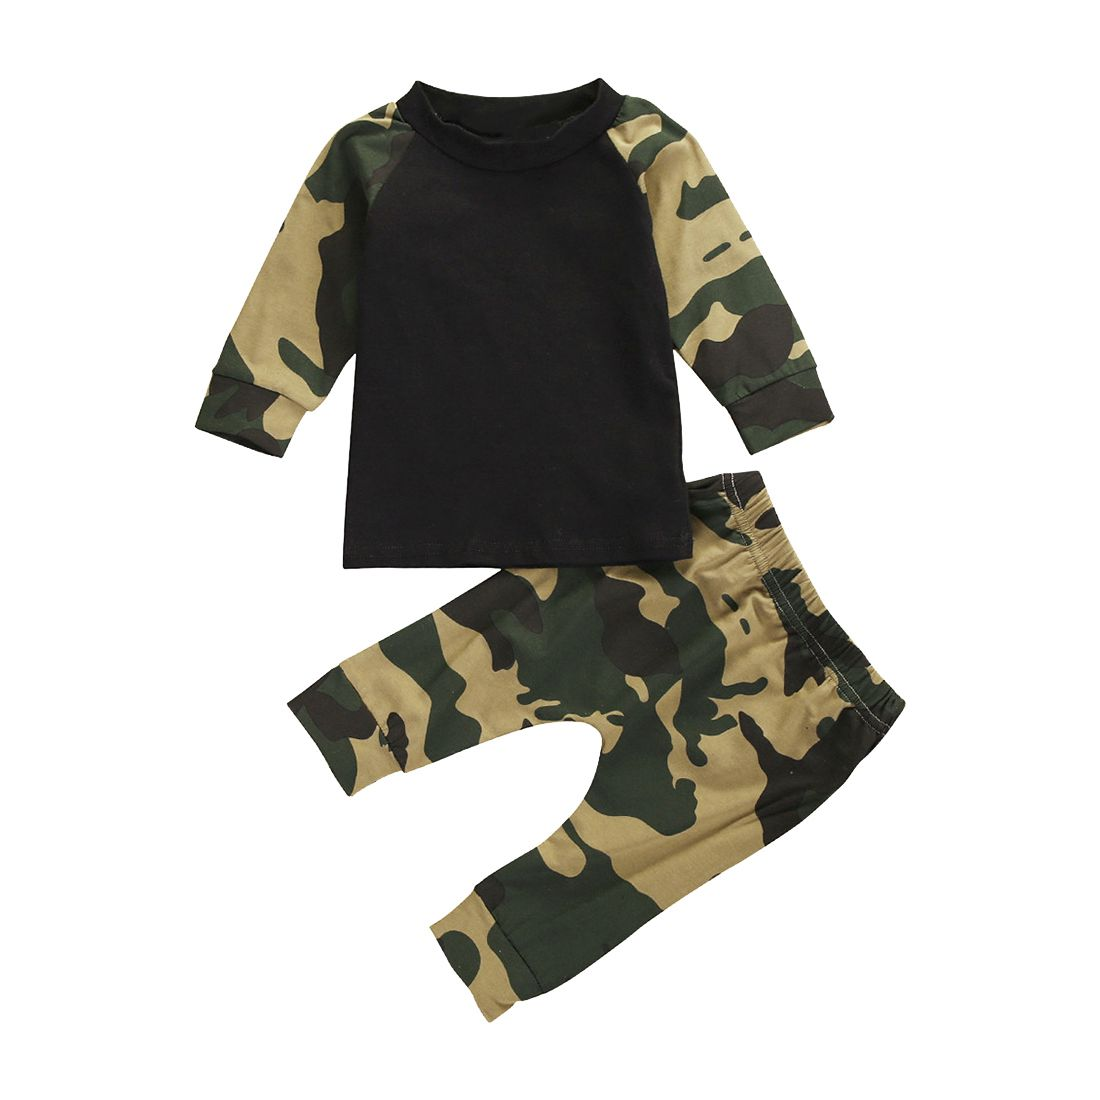 Cute Newborn Baby Boys Kids T-shirt Top+Long Pants Outfit Clothes Set, Black&camouflage 70cm